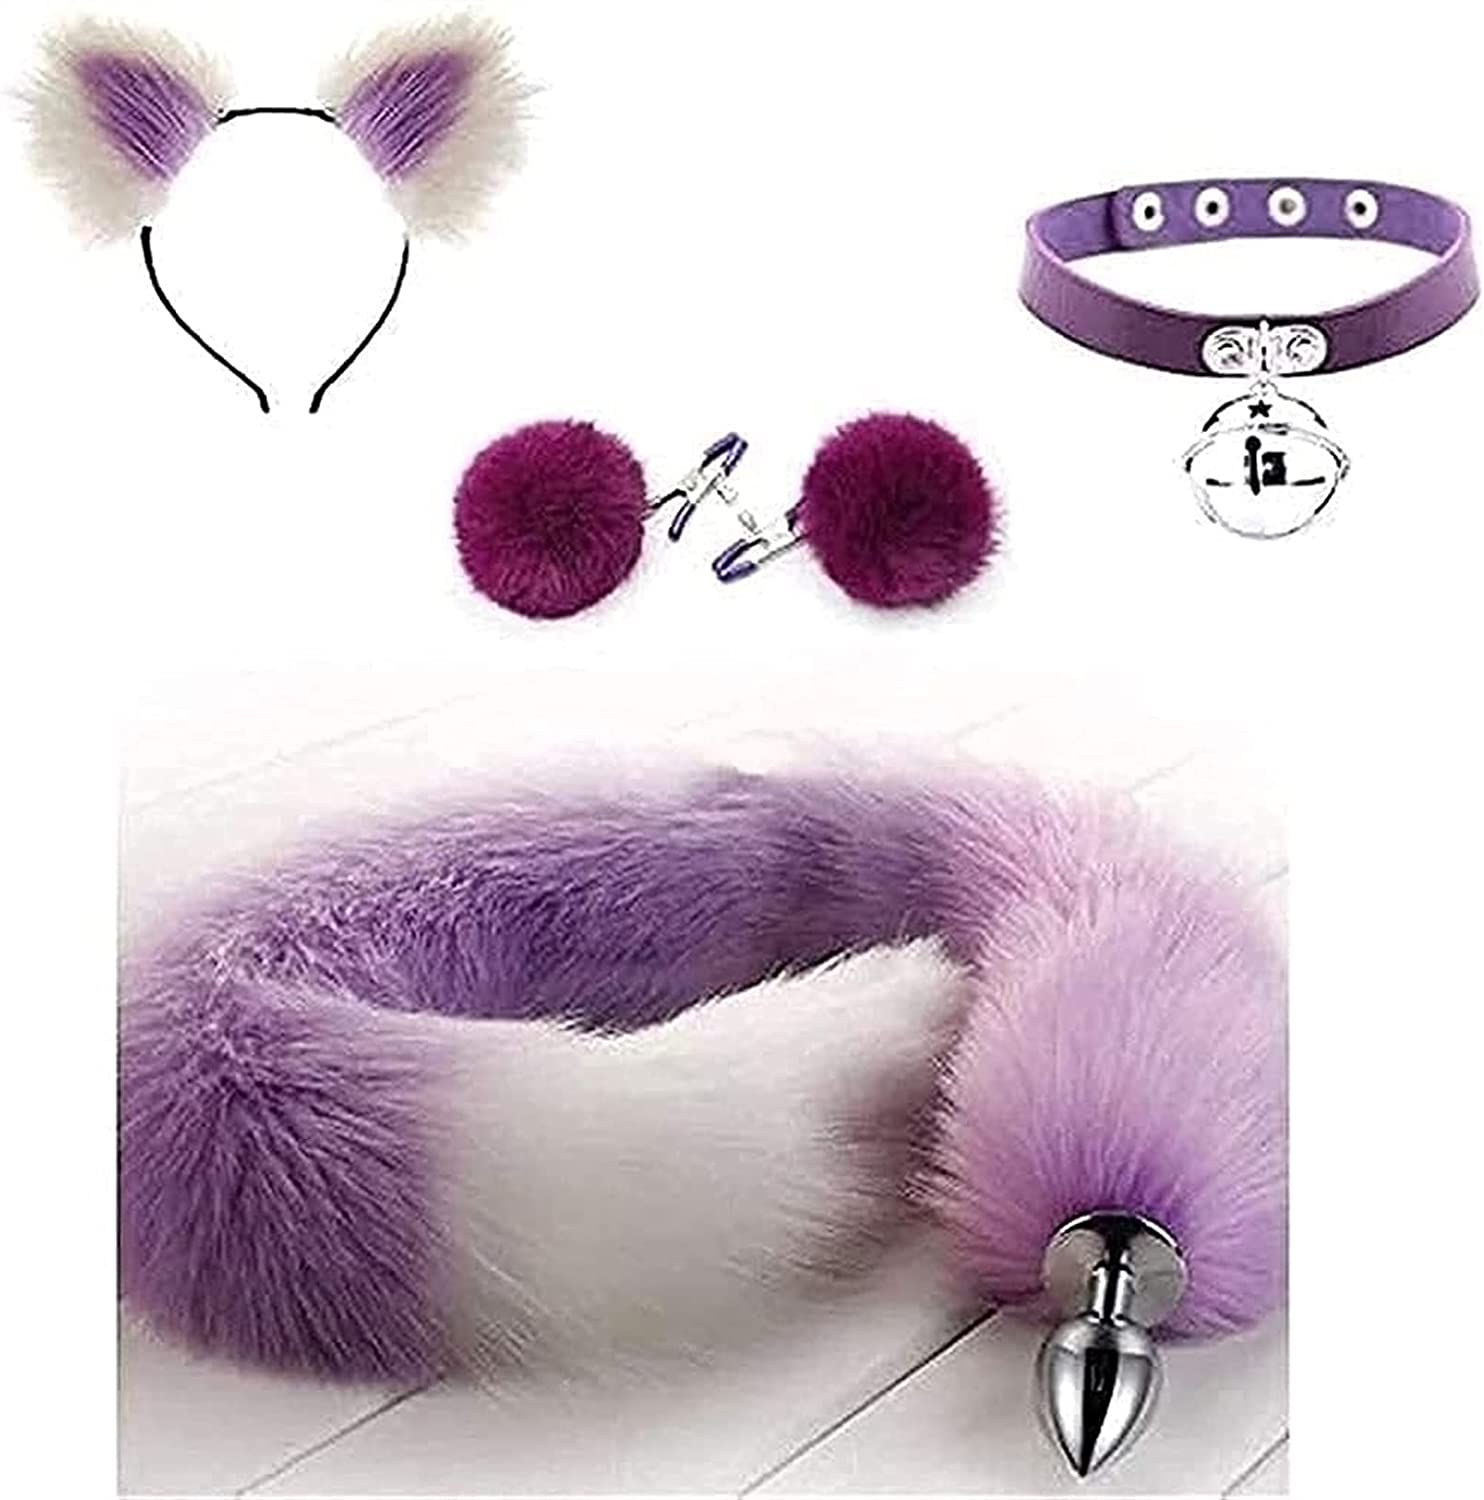 Max 66% OFF 4Pcs Set Purple Glamour Fox Tail Ḃuá¹-t Ears with Hairpi Plûg Ranking TOP1